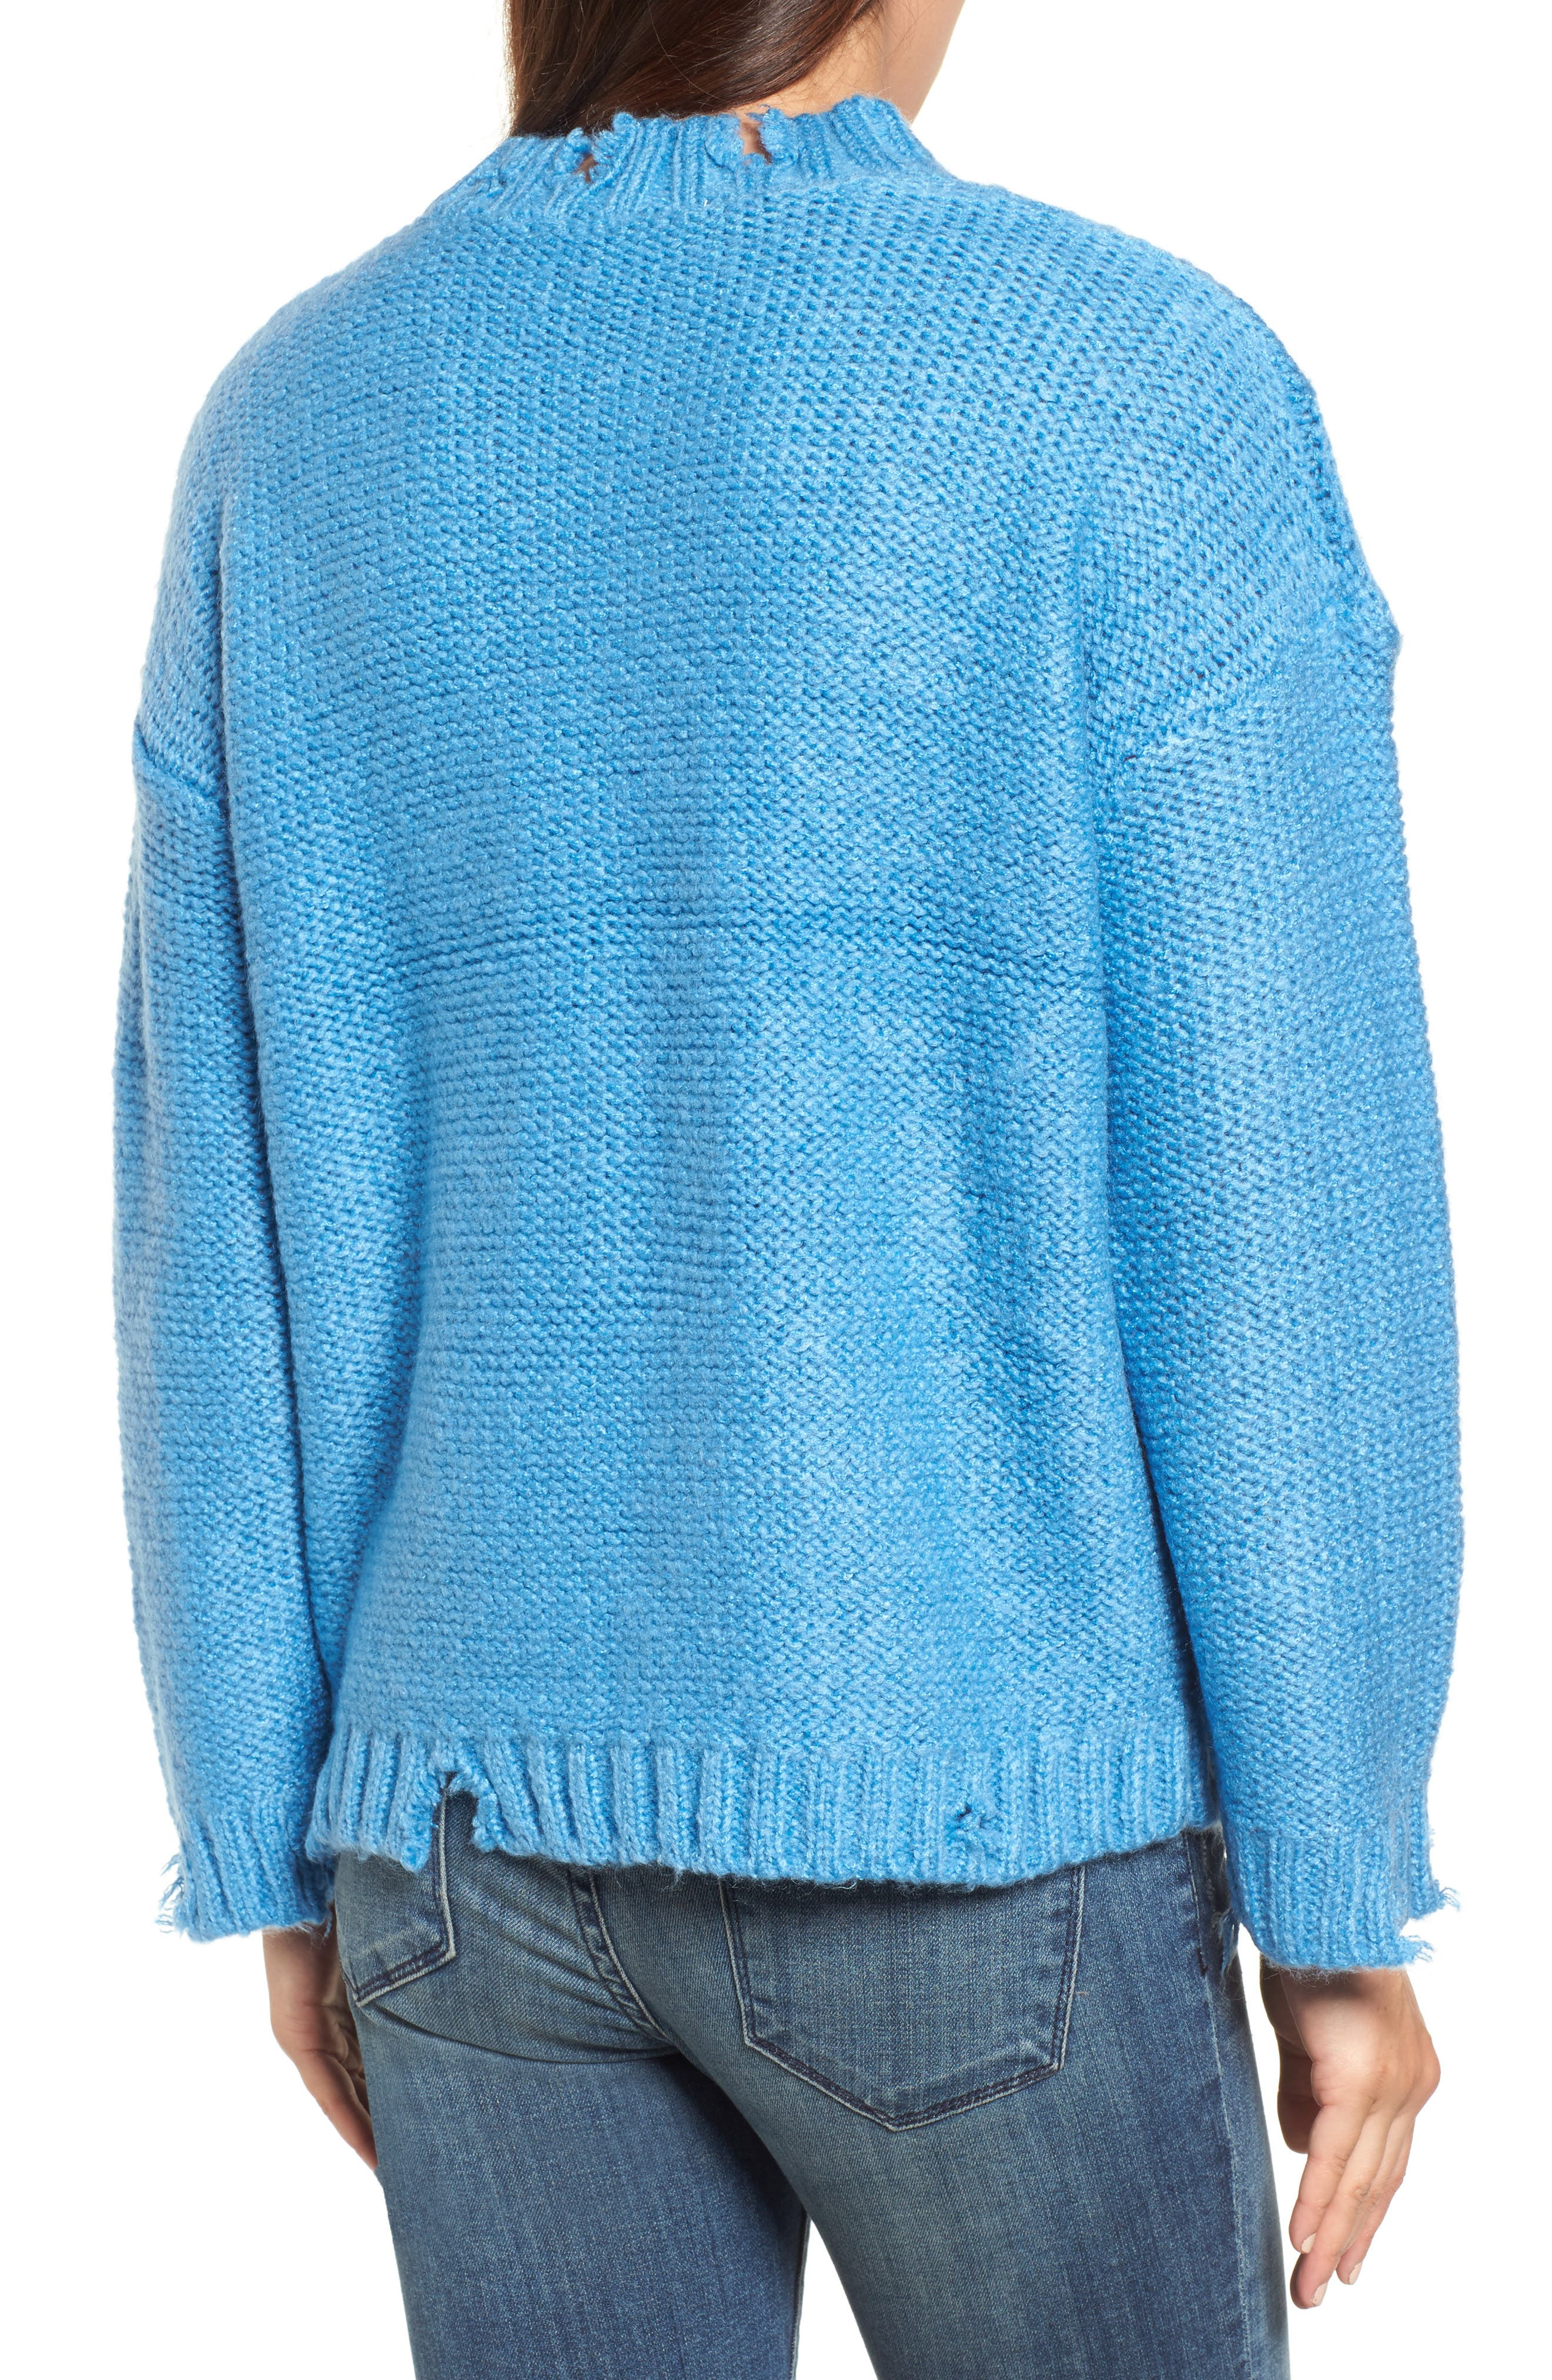 Destroyed Cable Knit Sweater,                             Alternate thumbnail 2, color,                             Turquoise